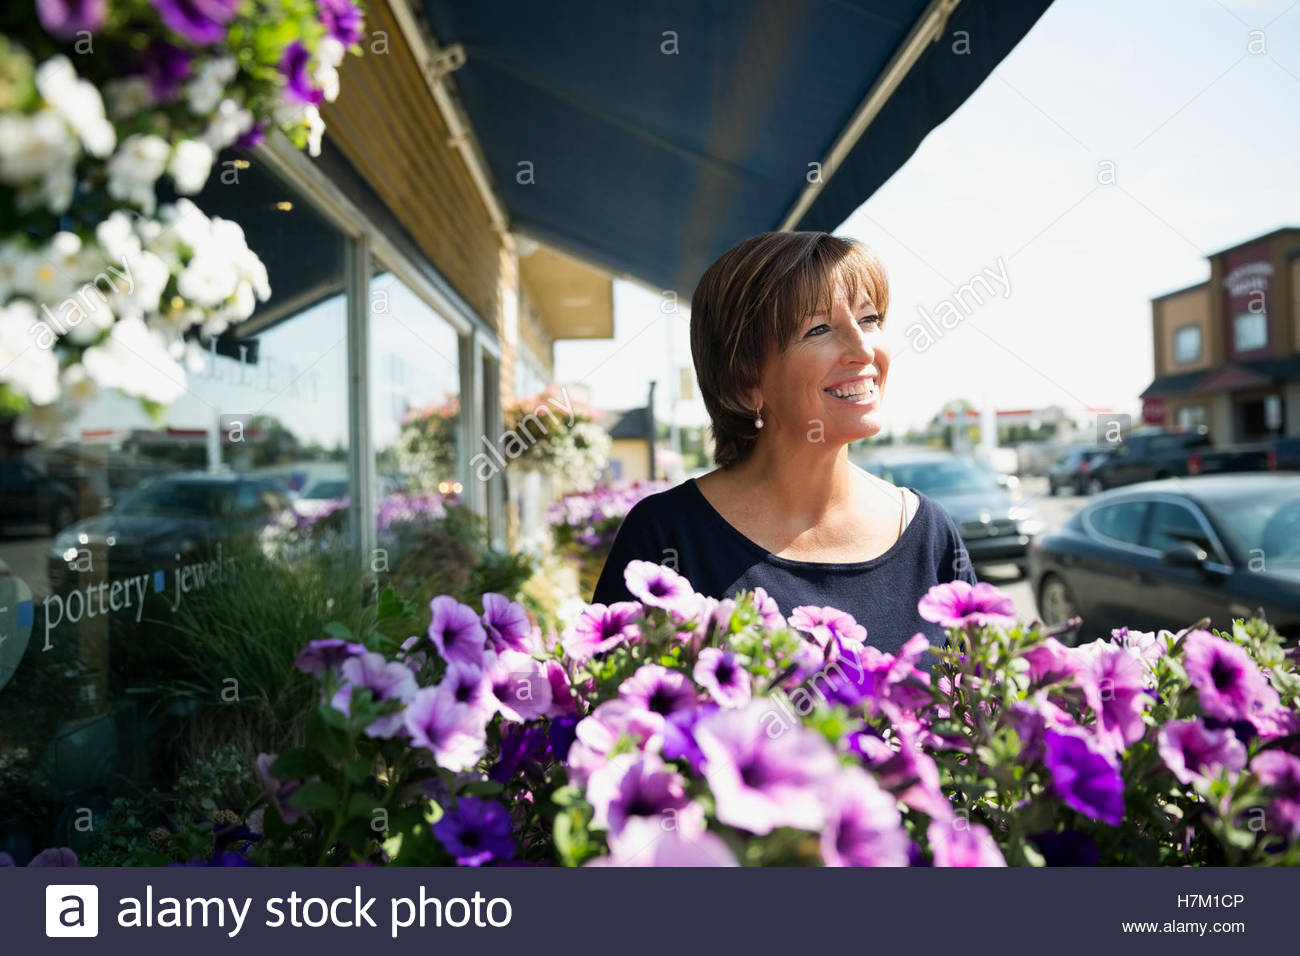 Smiling mature woman at sunny flower shop storefront - Stock Image